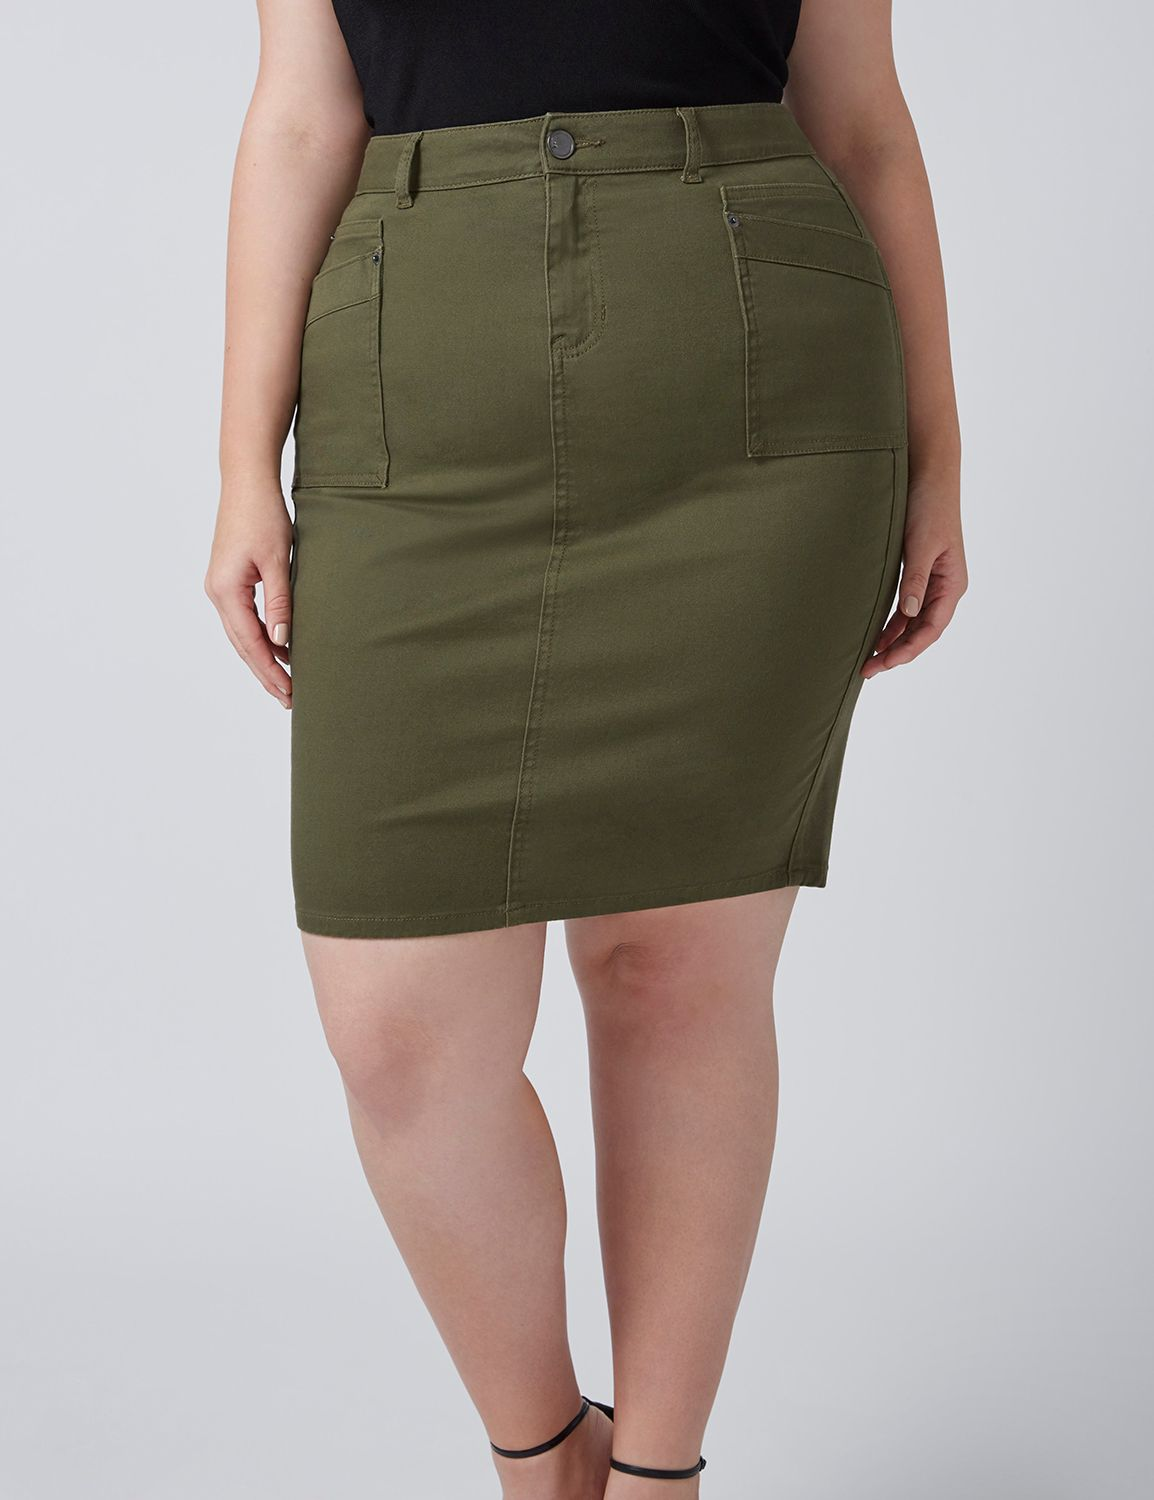 Lane Bryant Womens Fast Lane Patch Pocket Skirt 16 Ivy Green